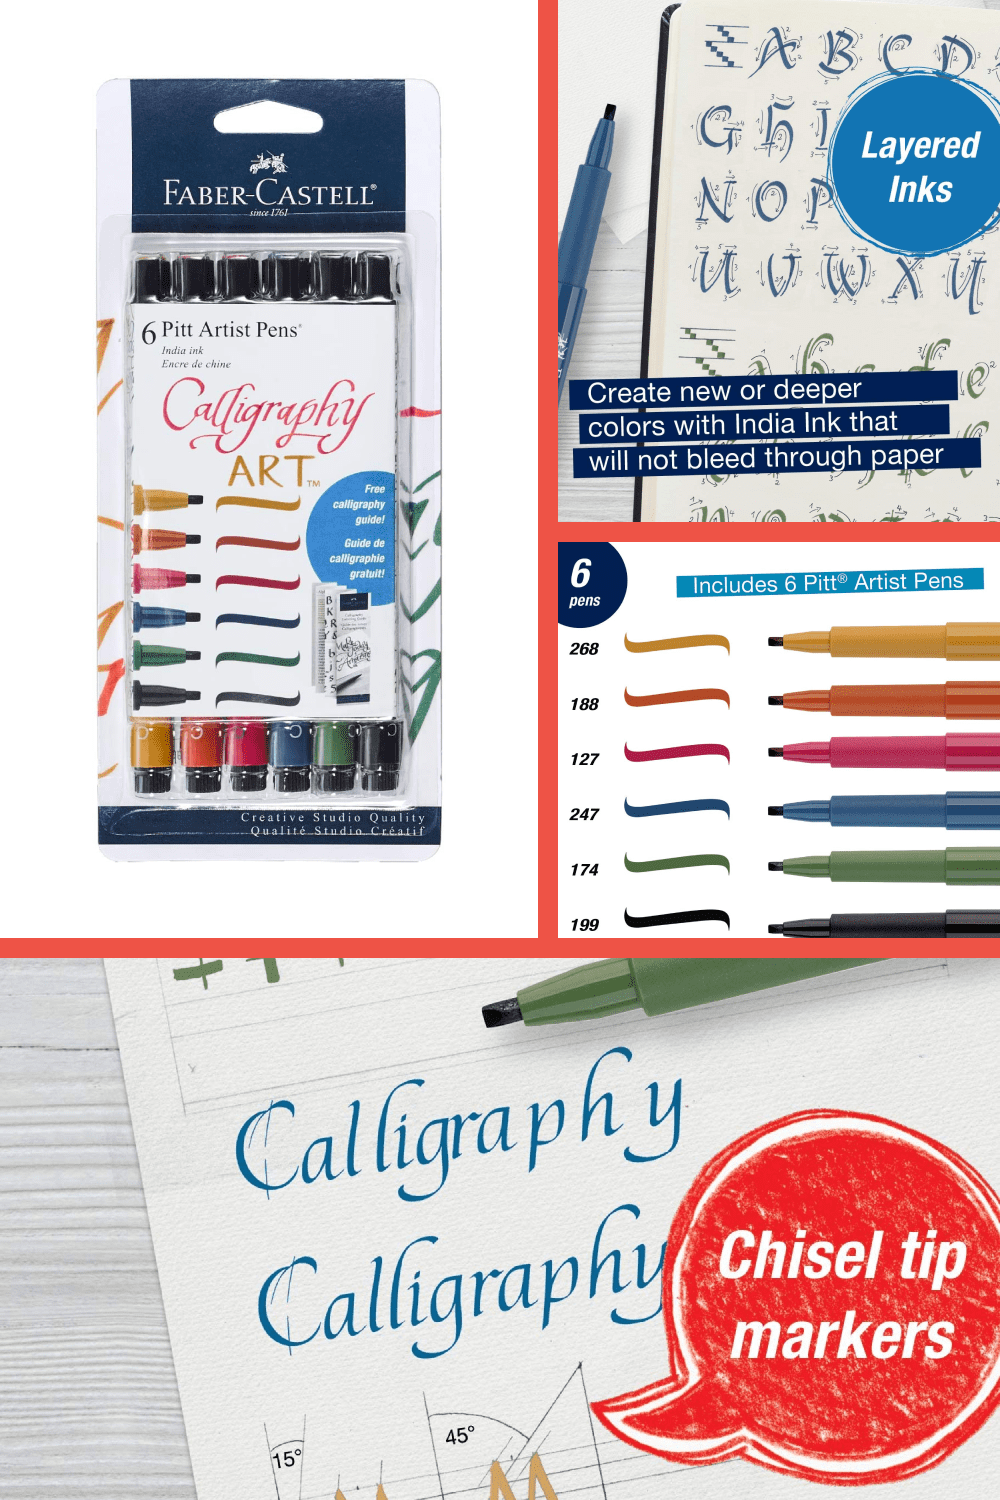 Faber-Castell Pitt Artist calligraphy pens are the best and most versatile brush pen on the market.